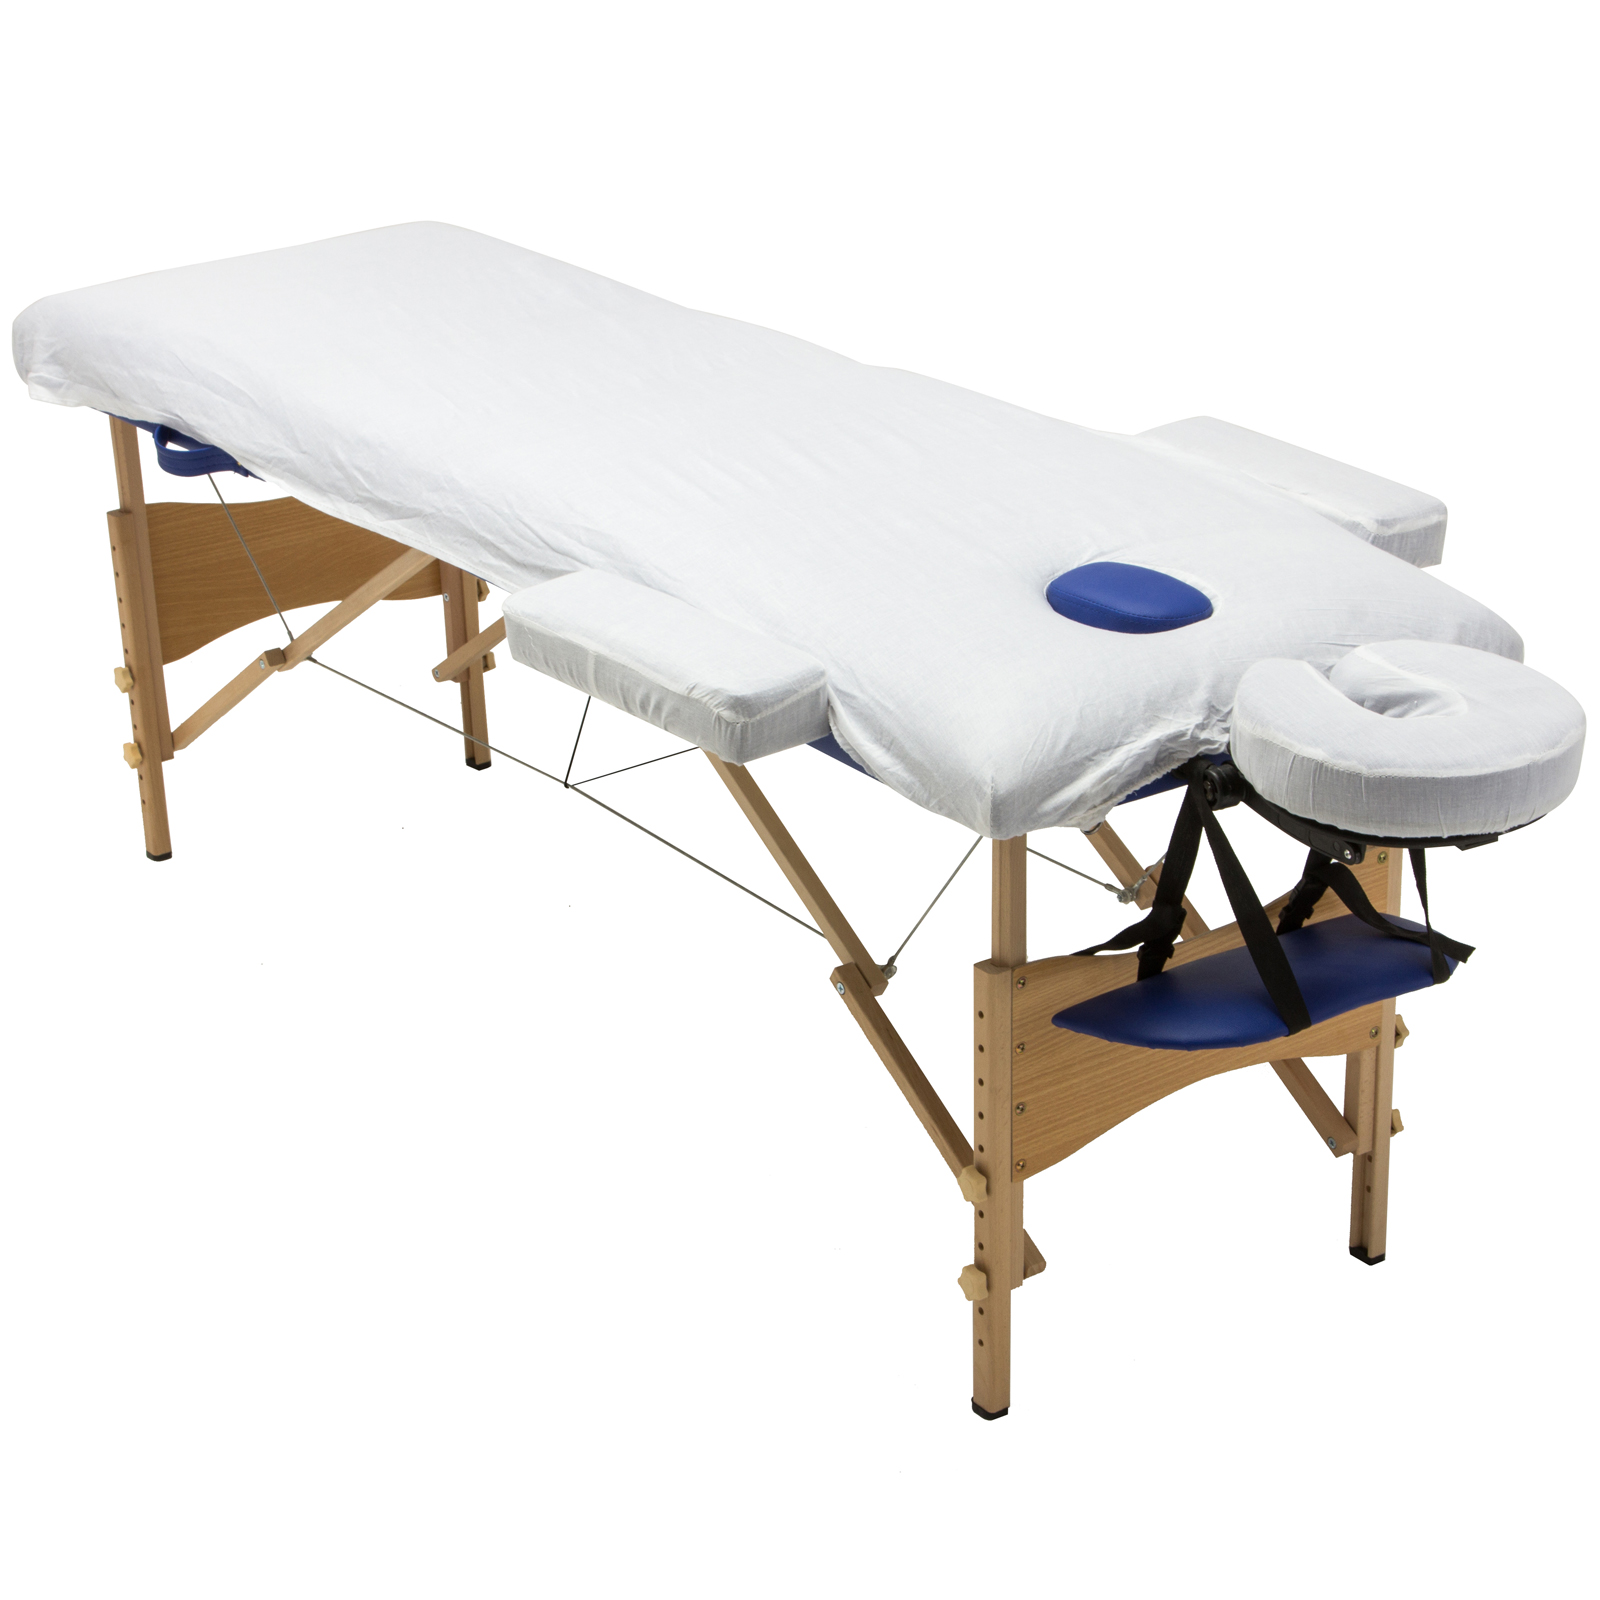 3 fold 84 l massage table portable facial spa bed sheet 2 bolsters cradle hanger ebay - How much is a massage table ...